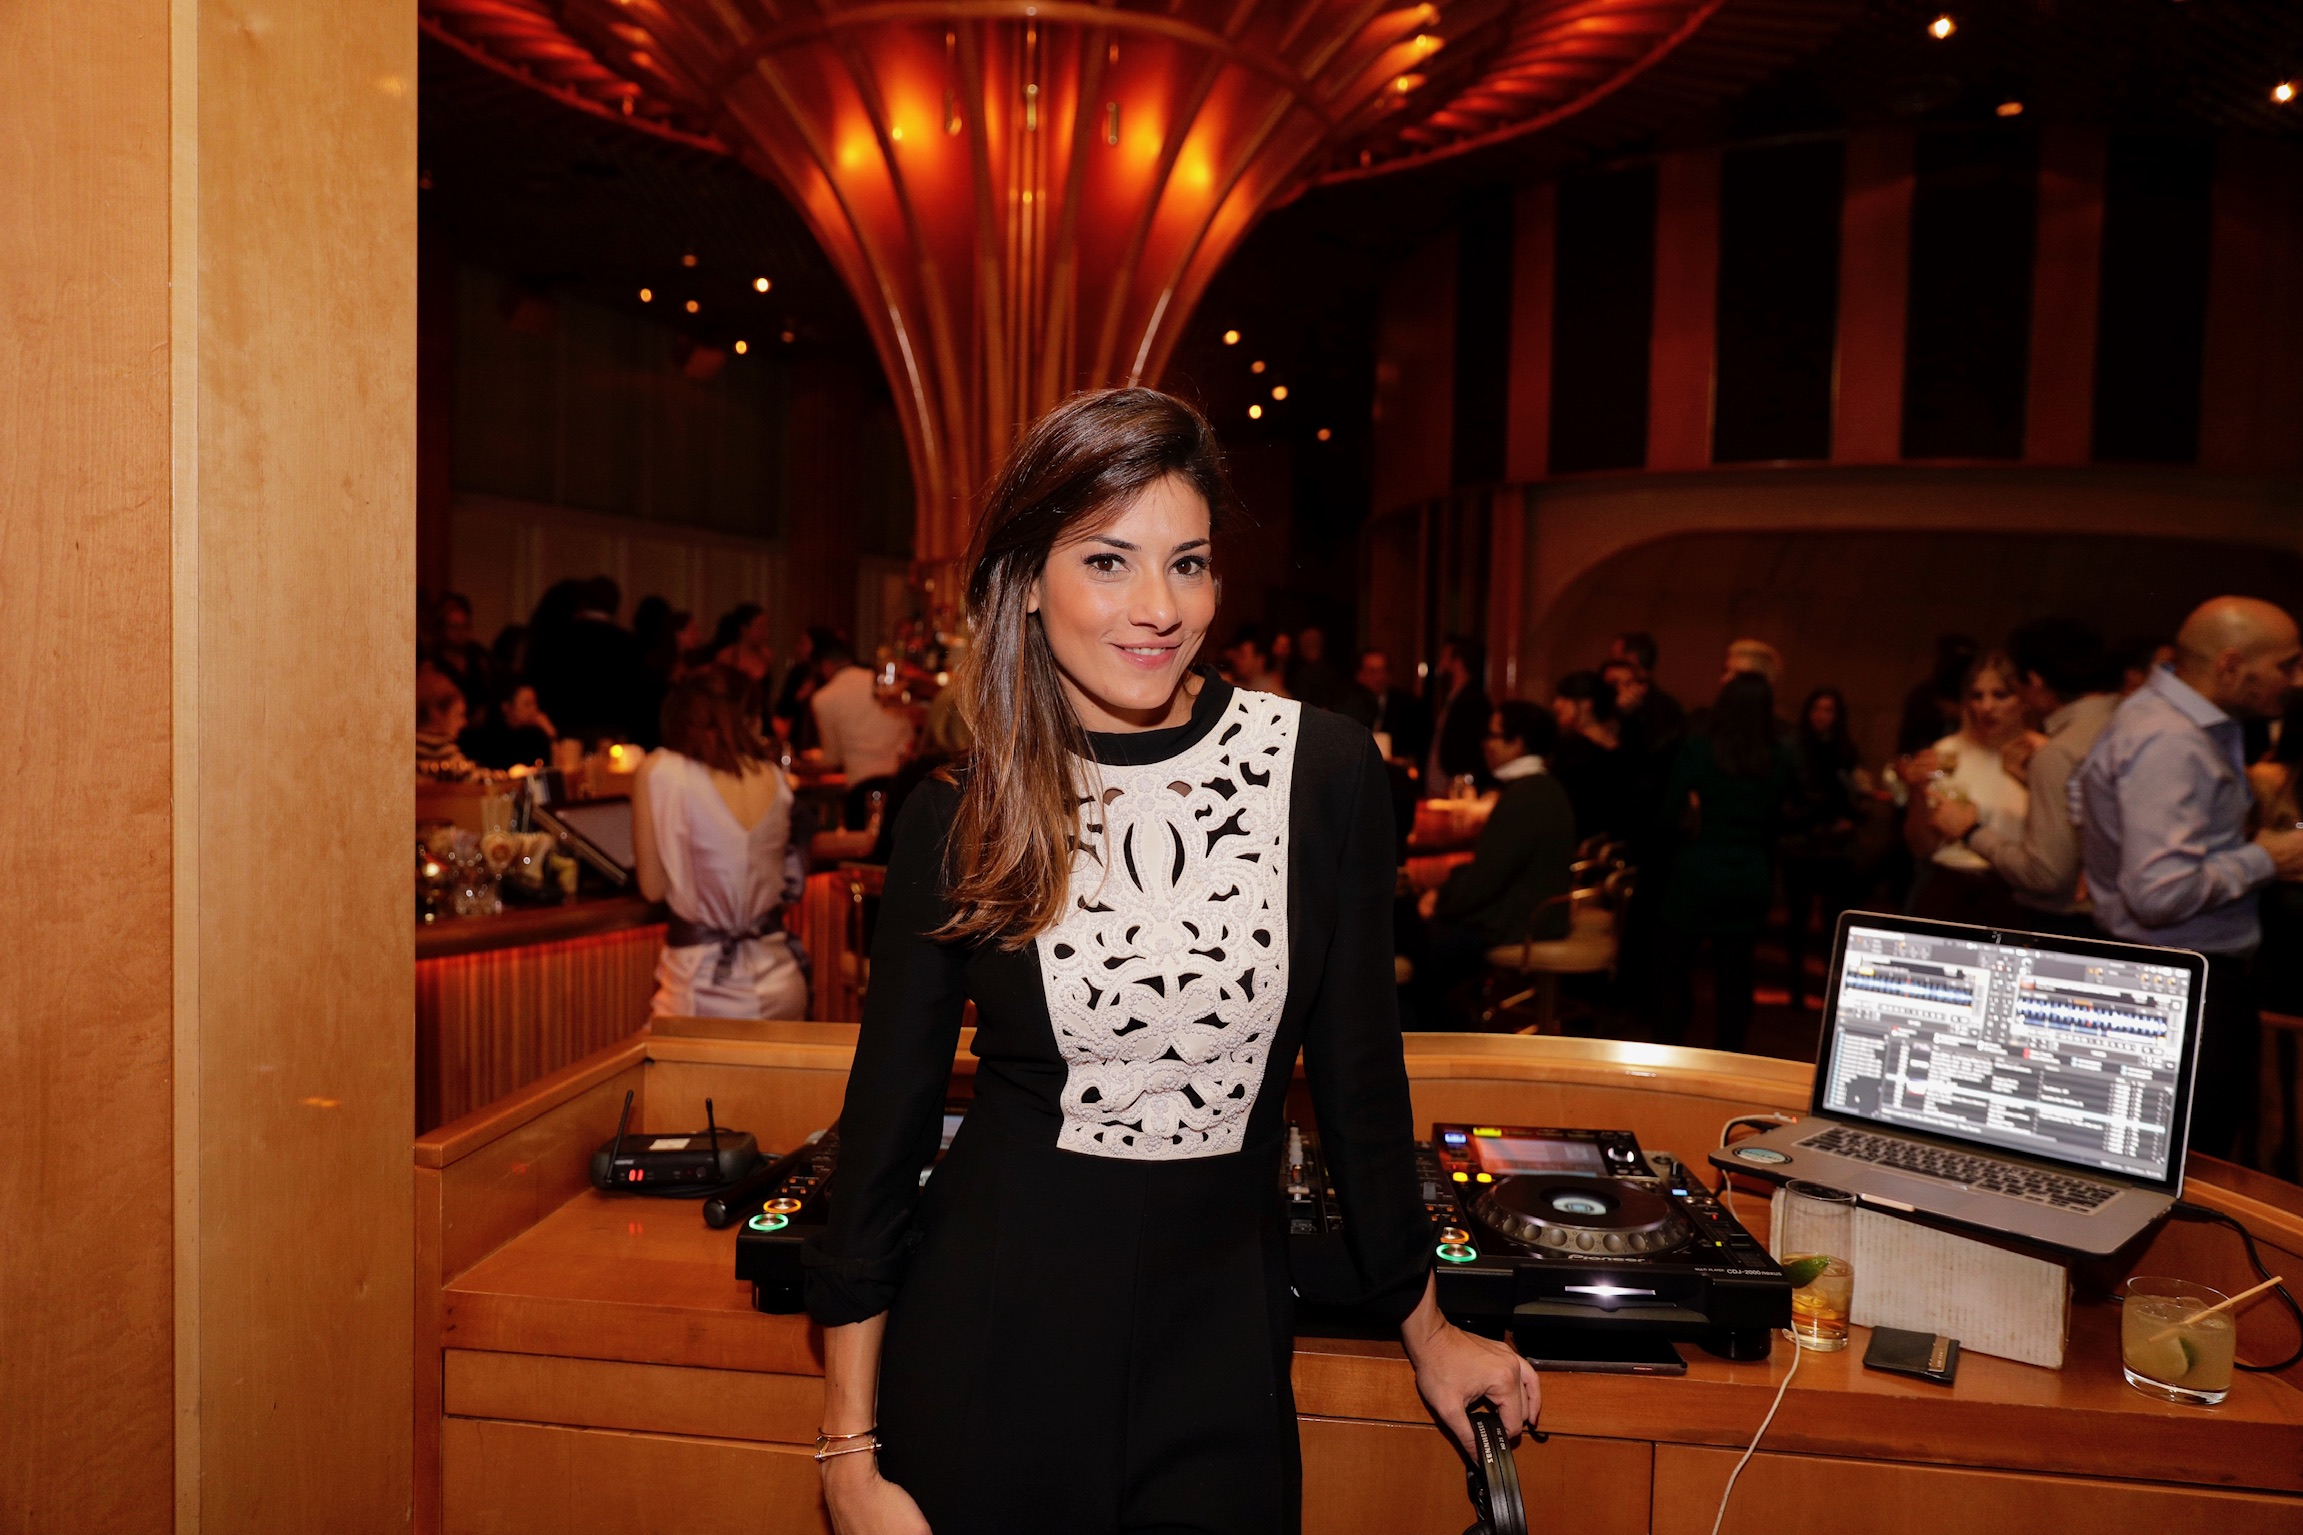 DJ Marina Diniz An Evening of Solidarity for Brumadinho BrazilFoundation AbraceMinasGerais Charity New York